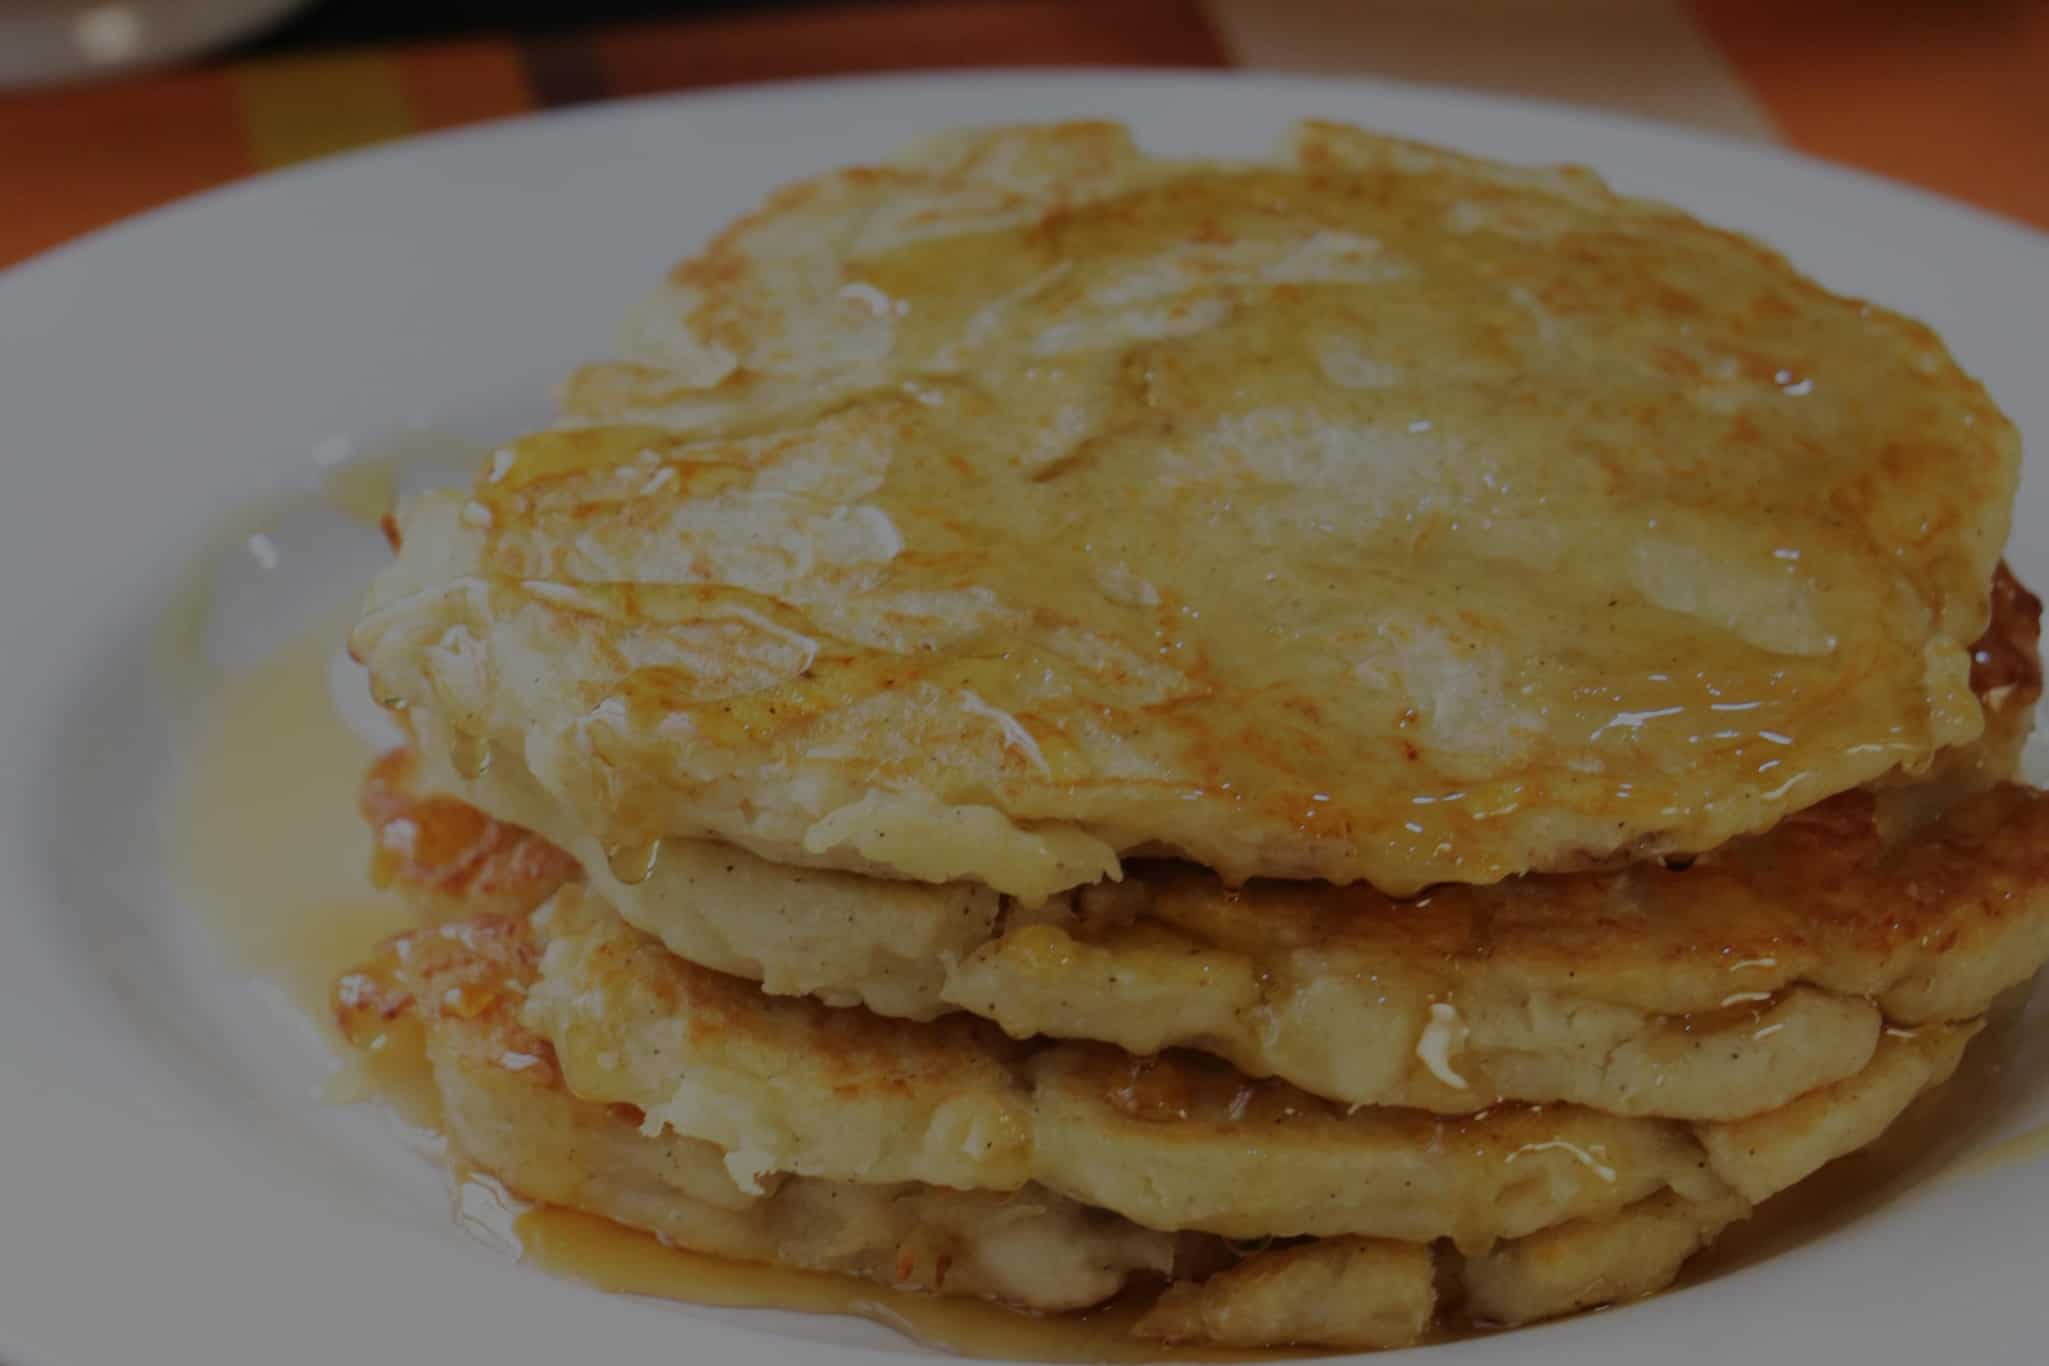 Yam and Shredded Chicken Pancakes